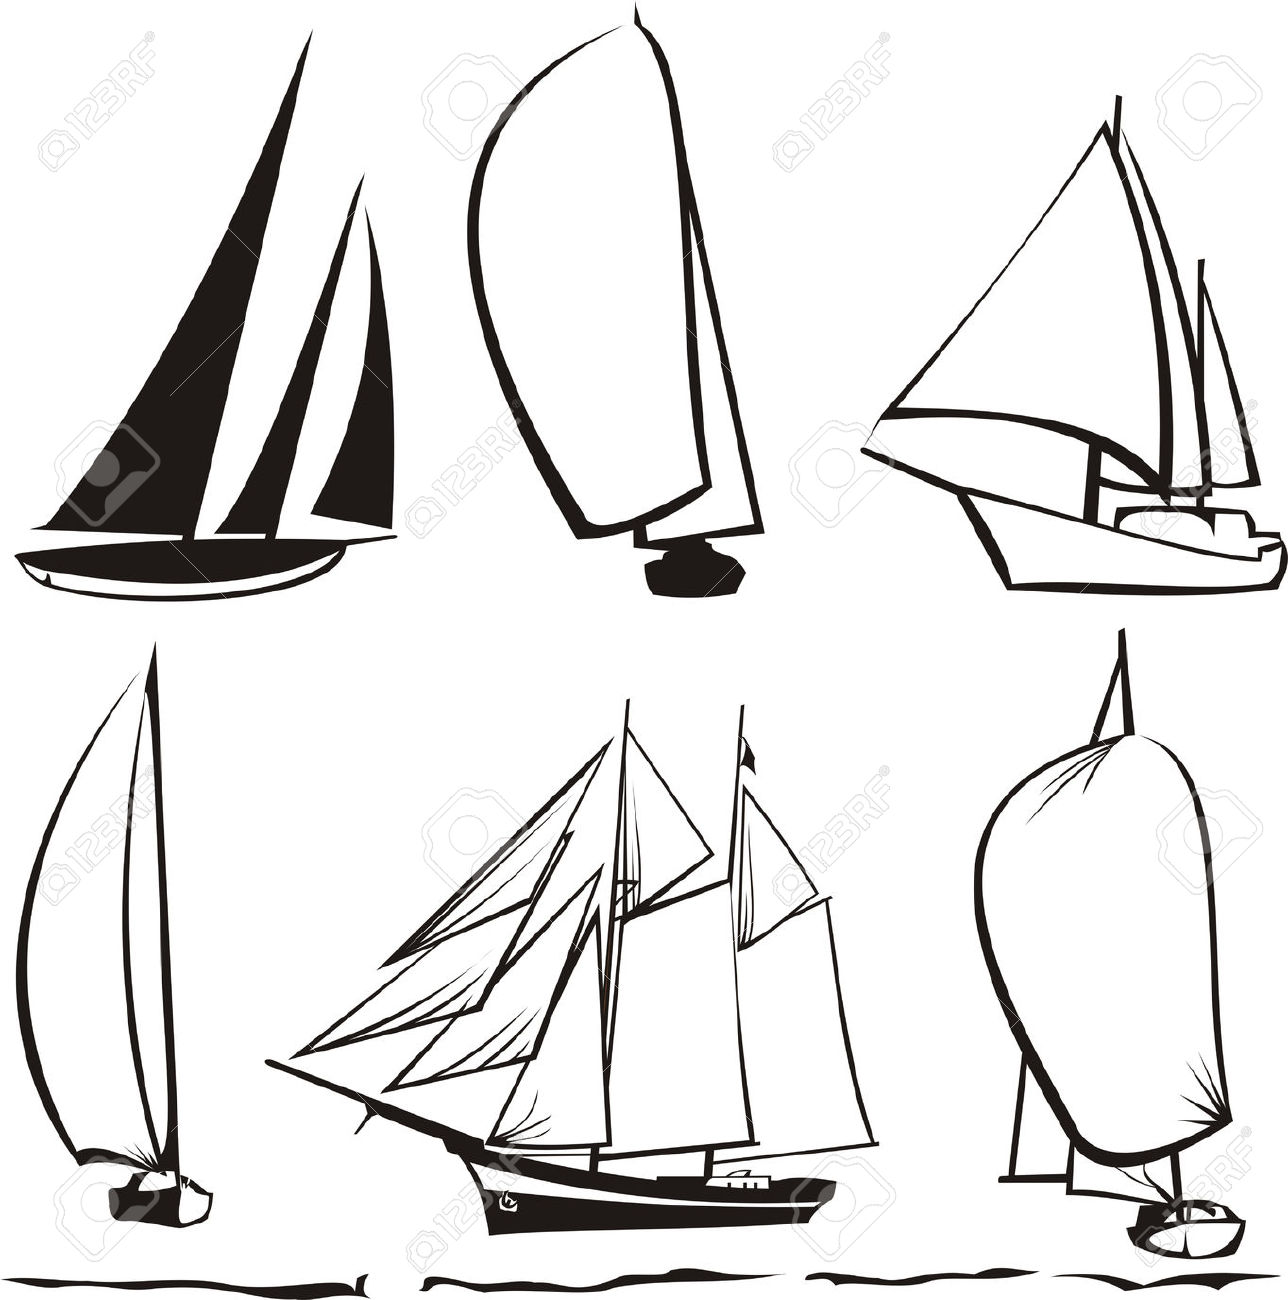 1288x1300 Drawn Sailing Silhouette